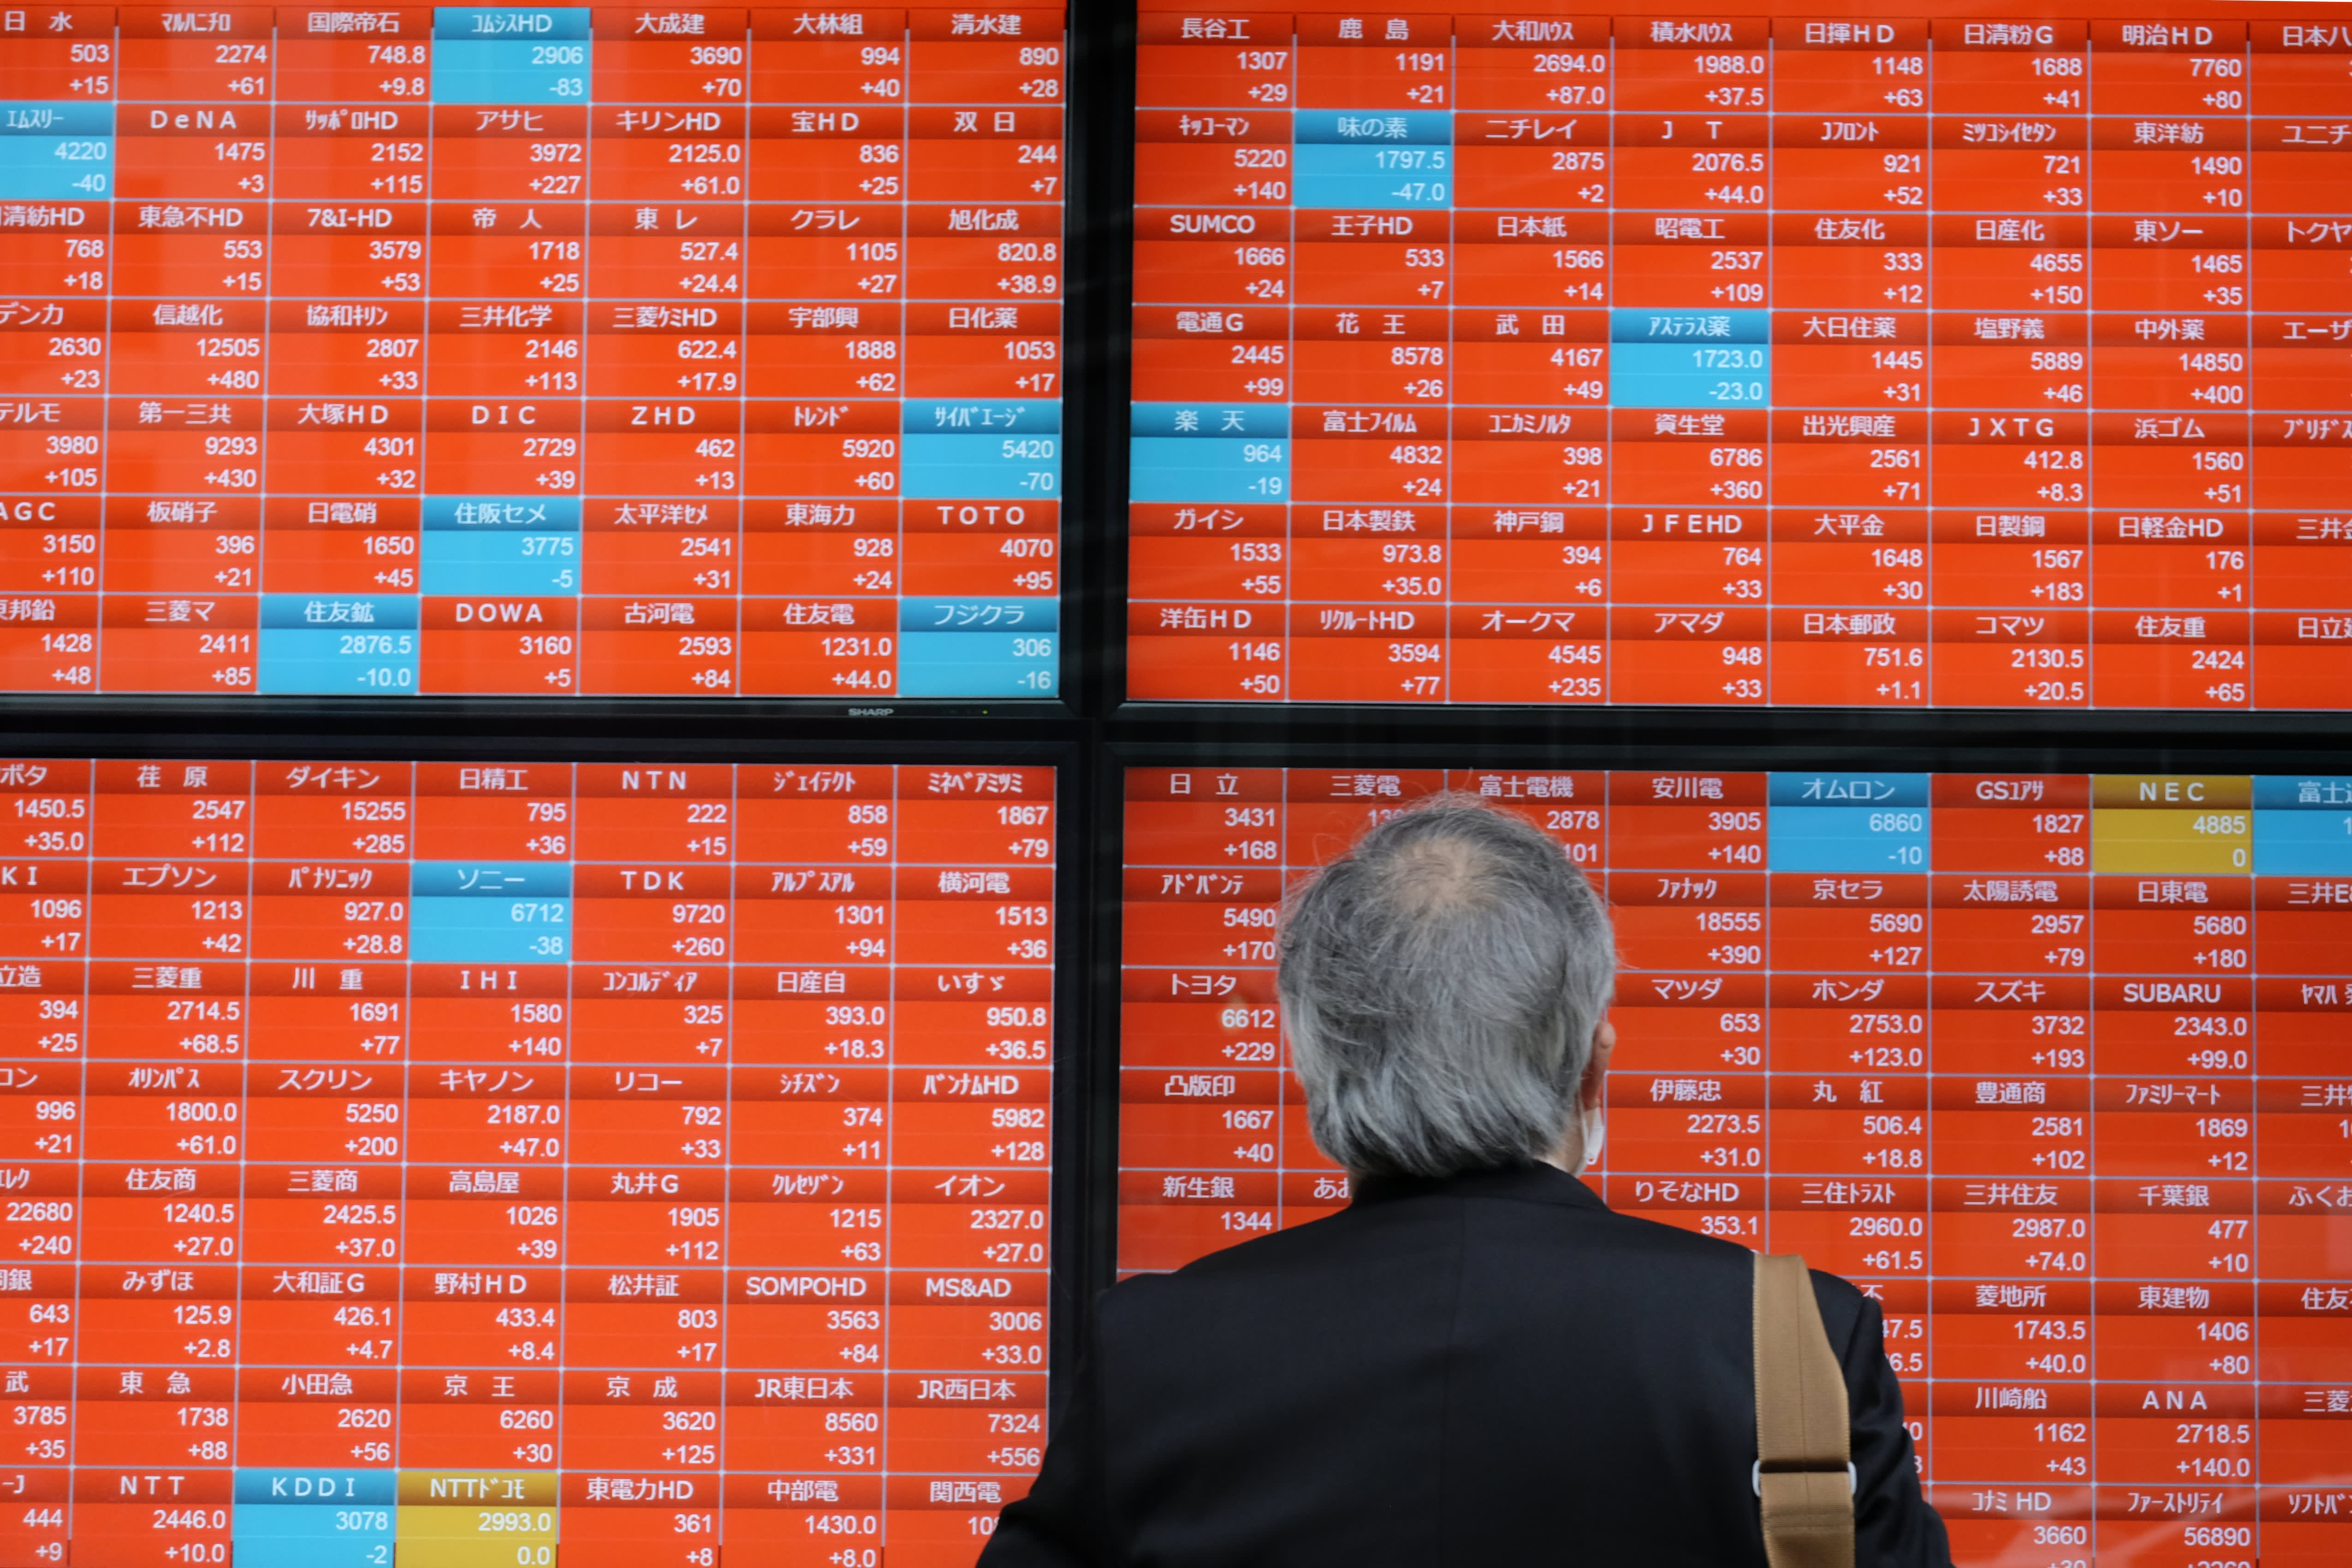 Asia Pacific stocks mostly higher as Fauci warns of surge of coronavirus cases in U.S.